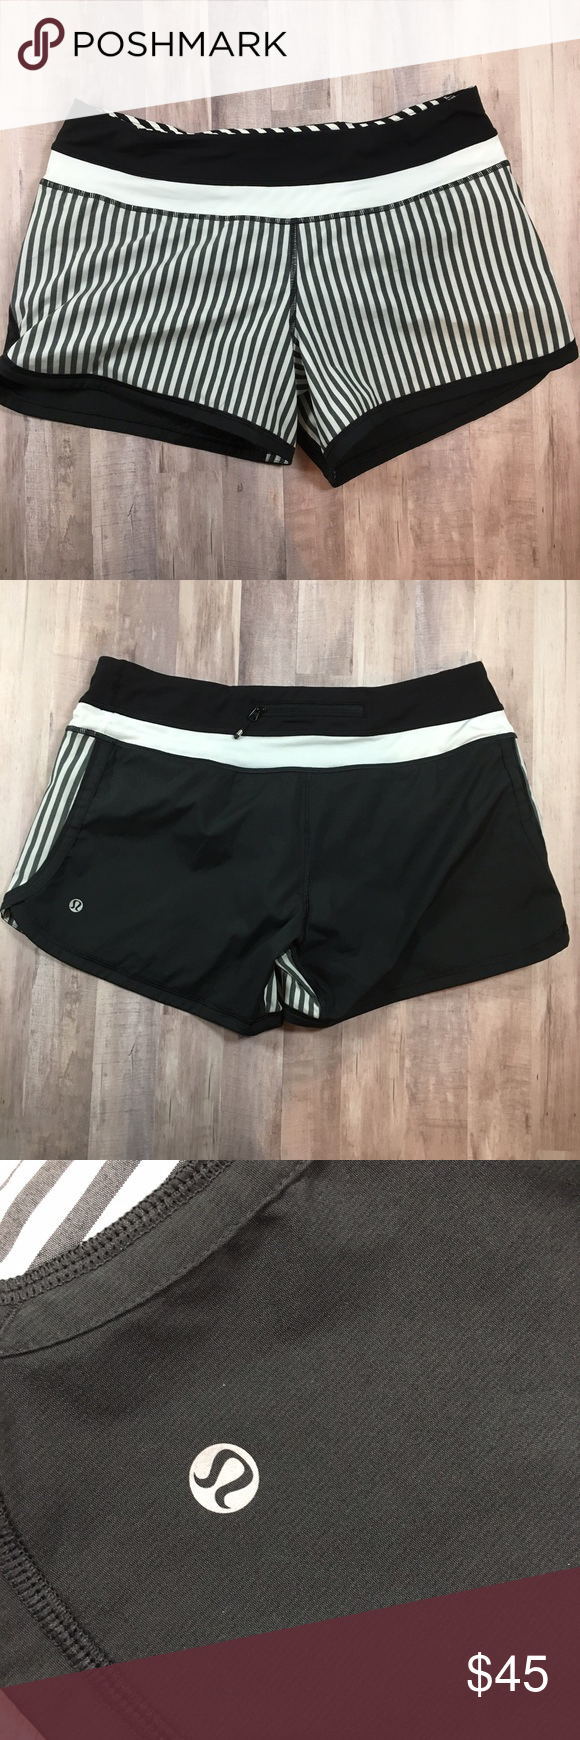 LULULEMON Groovy running shorts black white stripe LULULEMON Groovy lined running shorts in black & white striped. Worn once. Tear tag removed. Size dot in zip pocket. Size 8. lululemon athletica Shorts